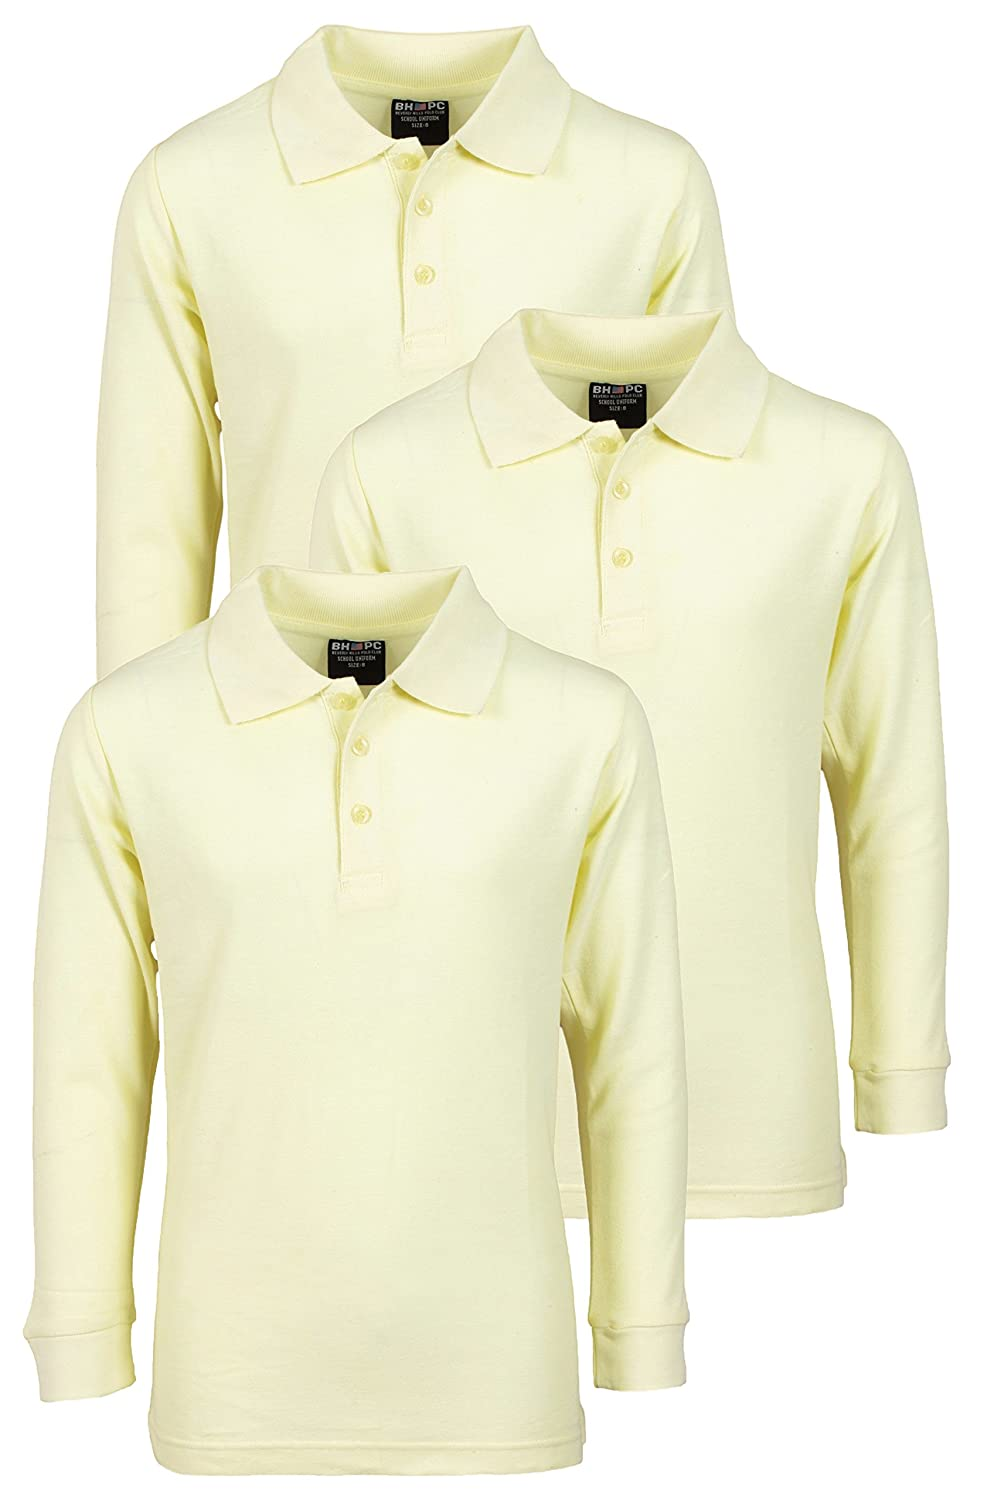 Beverly Hills Polo Club Pique Polo Uniform Long Sleeve Shirts Boys 3PK